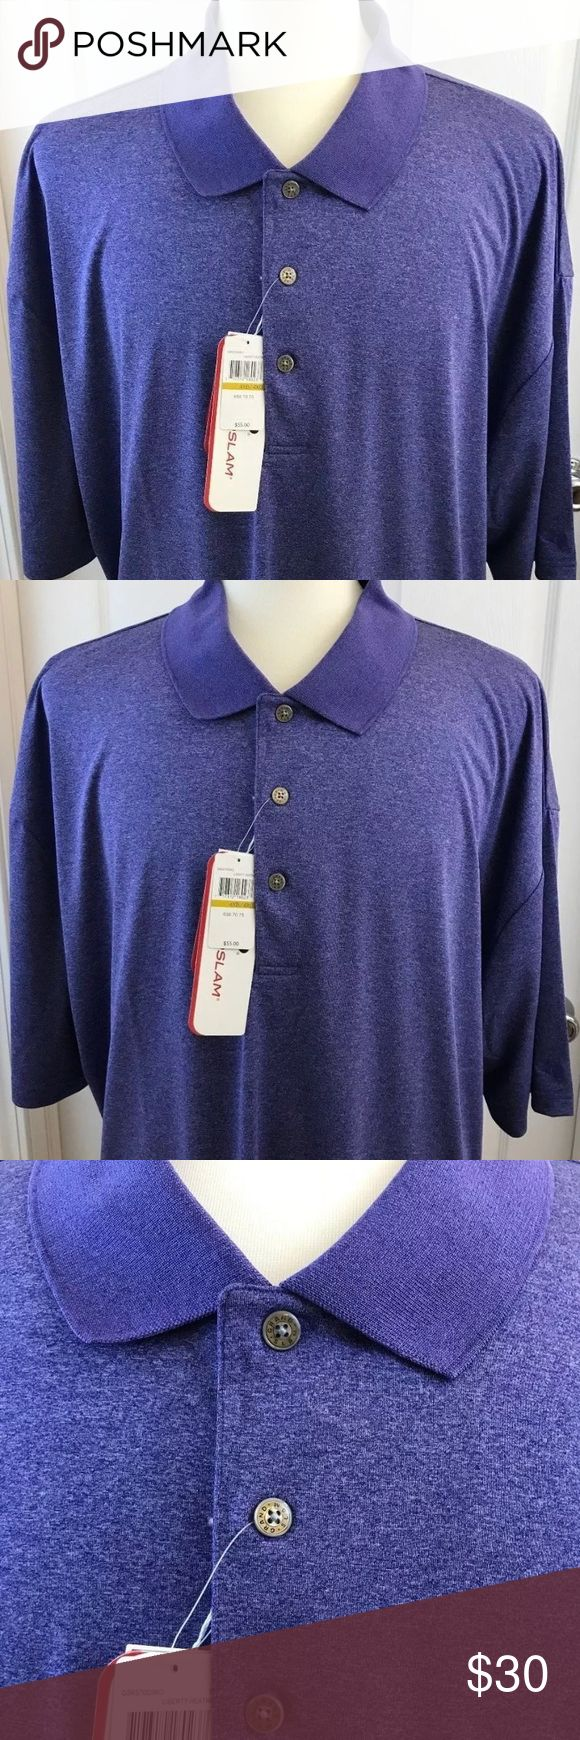 Grand Slam mens polo 4XB blue easy care driflow Grand Slam men's big & tall short sleeve polo shirt  Three button, driflow wicking, easy care sun protection fabric, polyester New with tags Size: 4XB Color: Liberty Heather is color on tag (Blue)  From a smoke-free & fragrance-free environment Grand Slam Shirts Polos